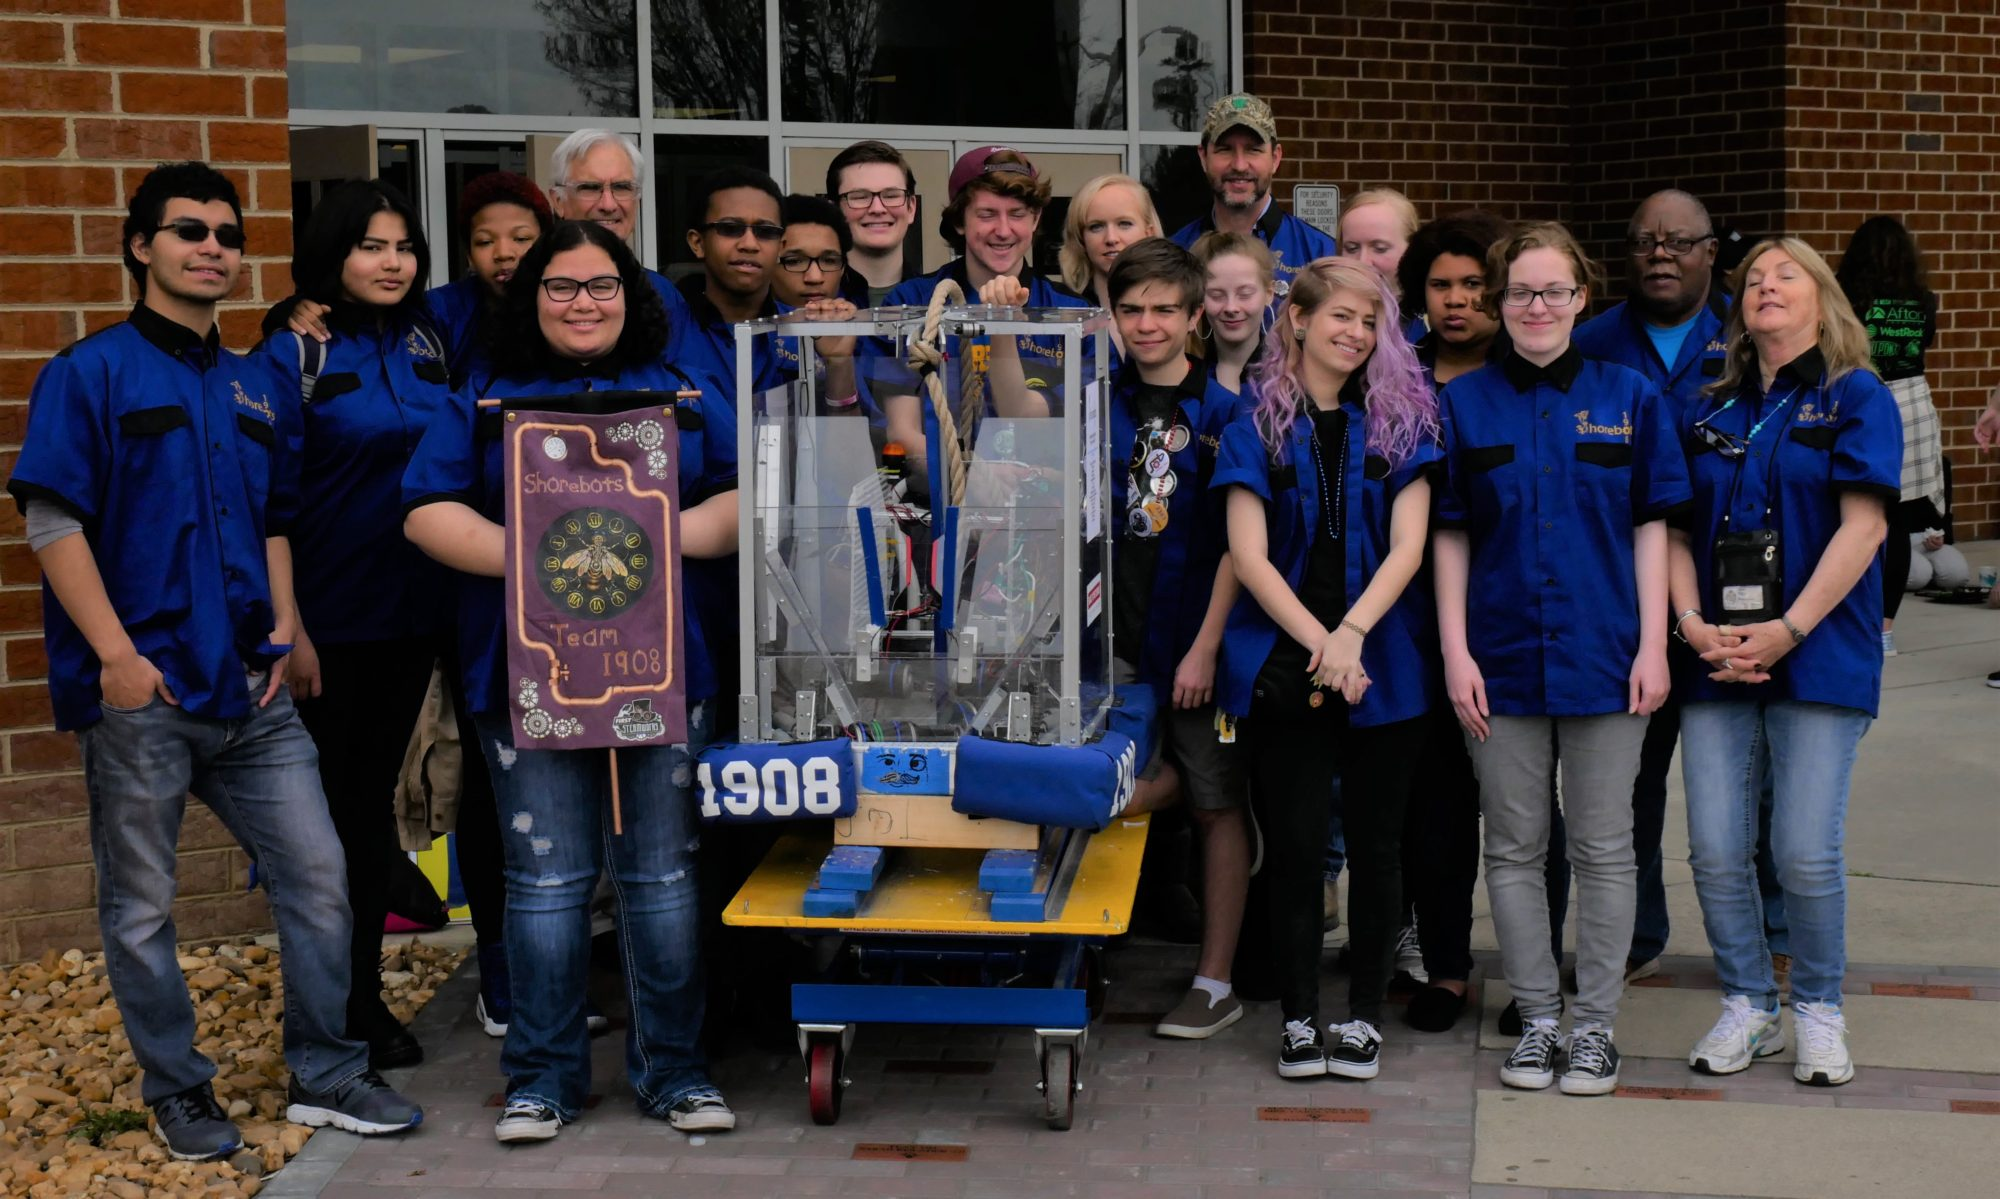 FRC Team 1908 Shorebots